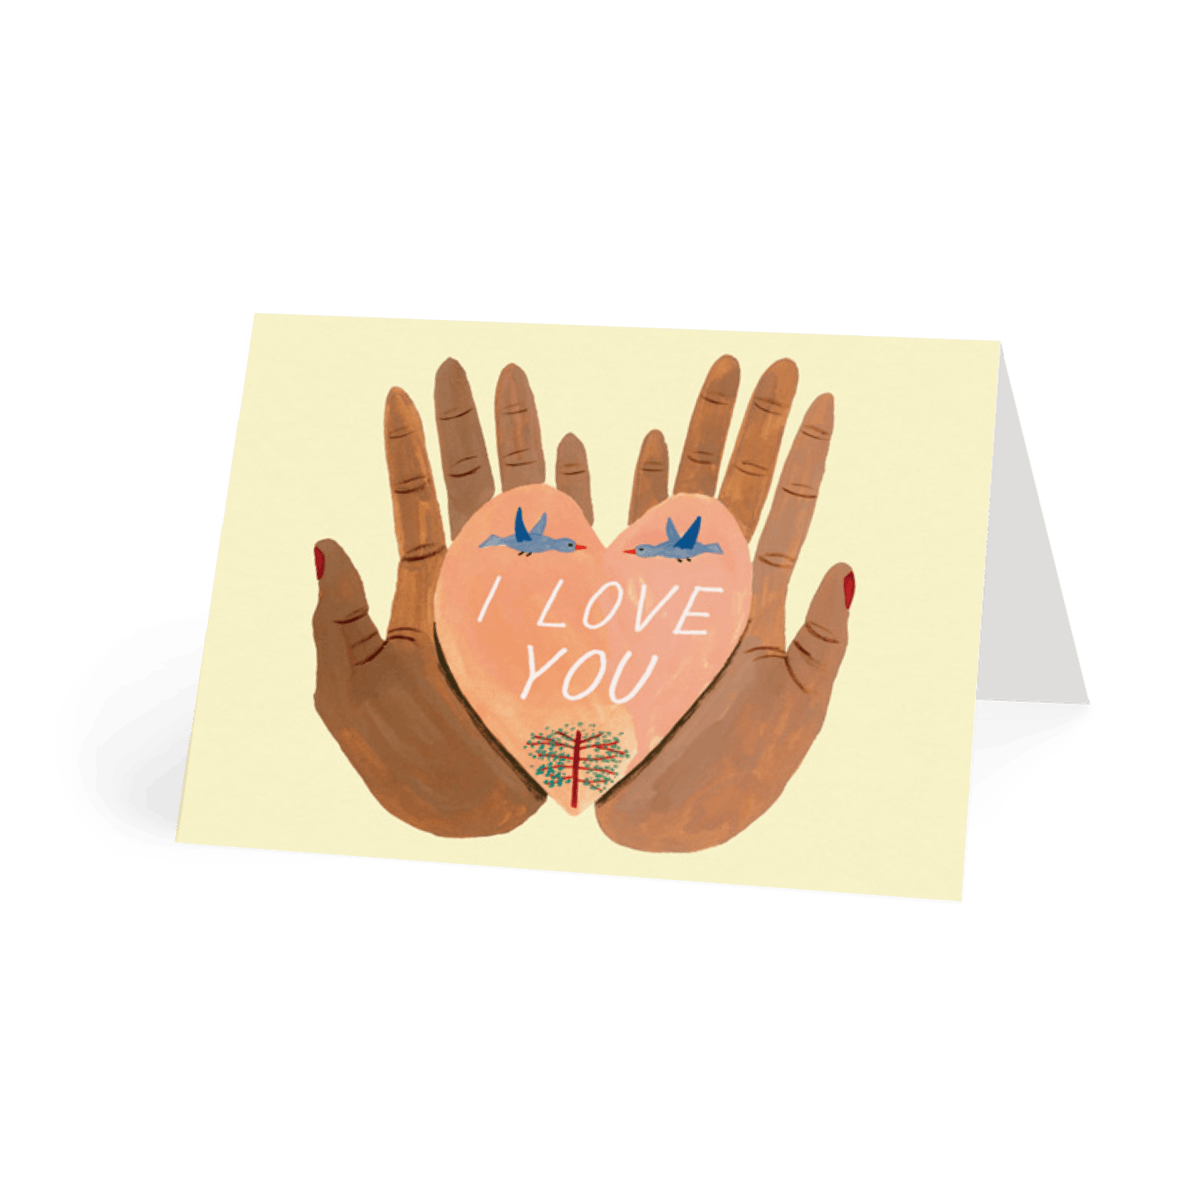 Https%3a%2f%2fwww.papier.com%2fproduct image%2f27546%2f14%2fpaperheart valentine 6869 front 1504620408.png?ixlib=rb 1.1